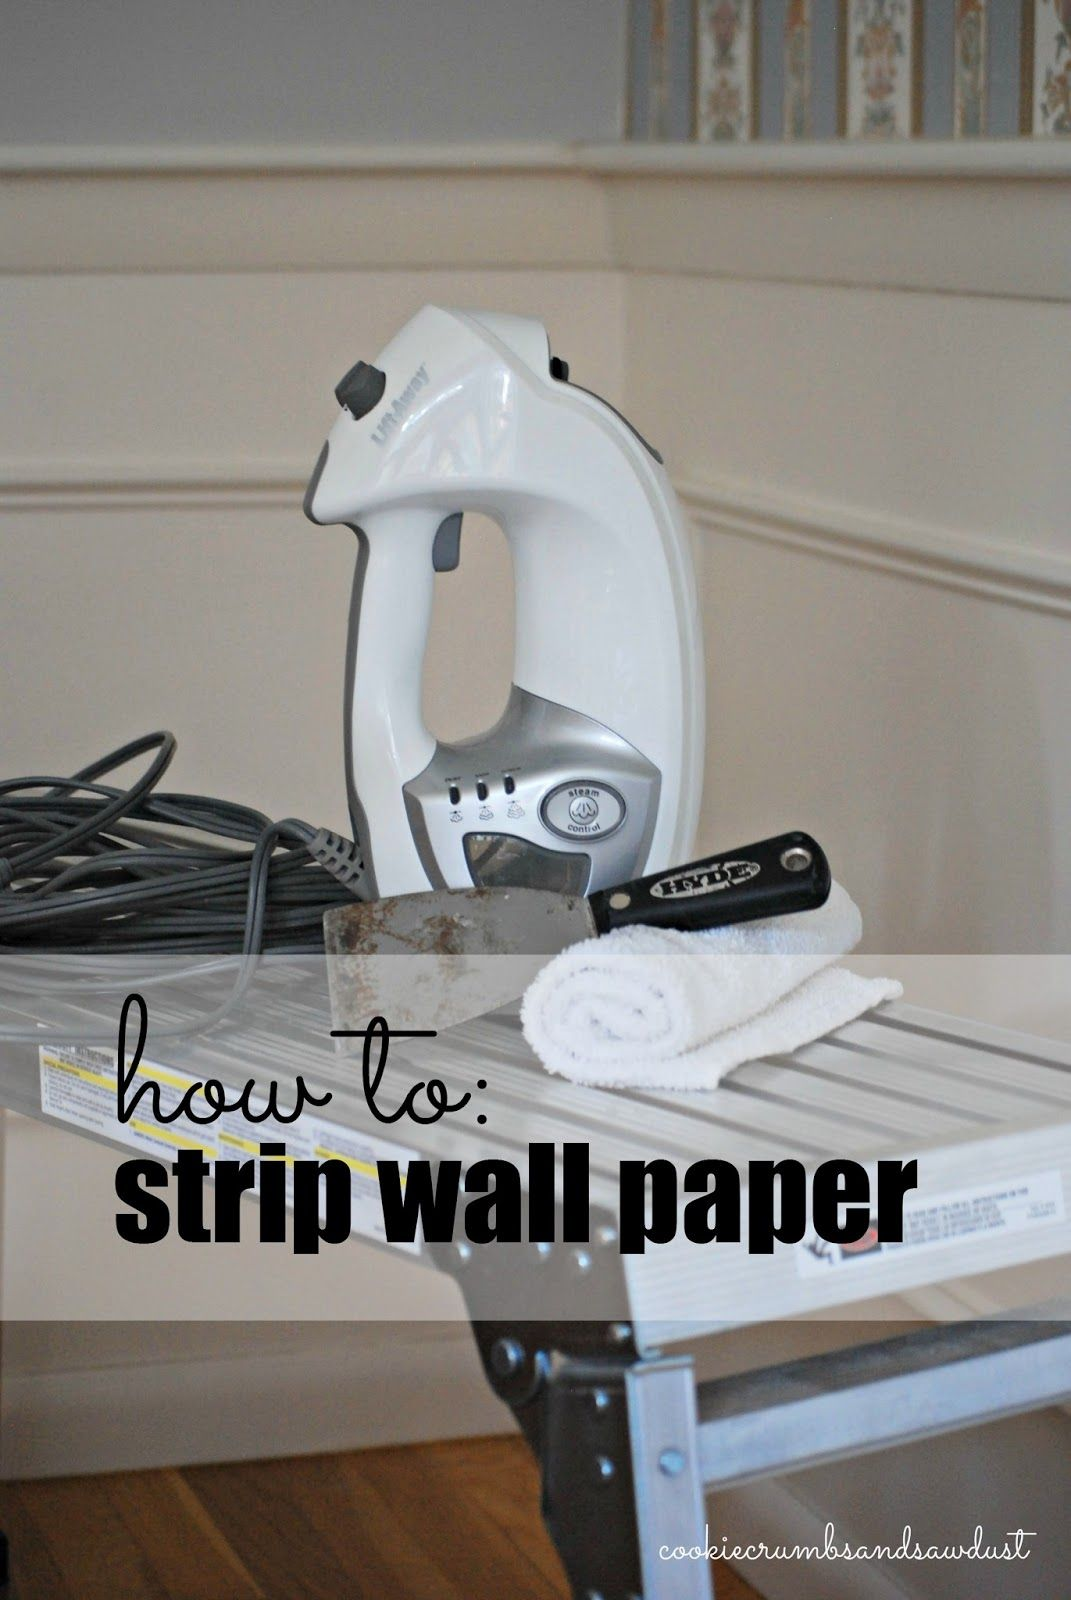 How To Strip Wallpaper Stripped Wallpaper Diy Renovation Wallpaper Steamers